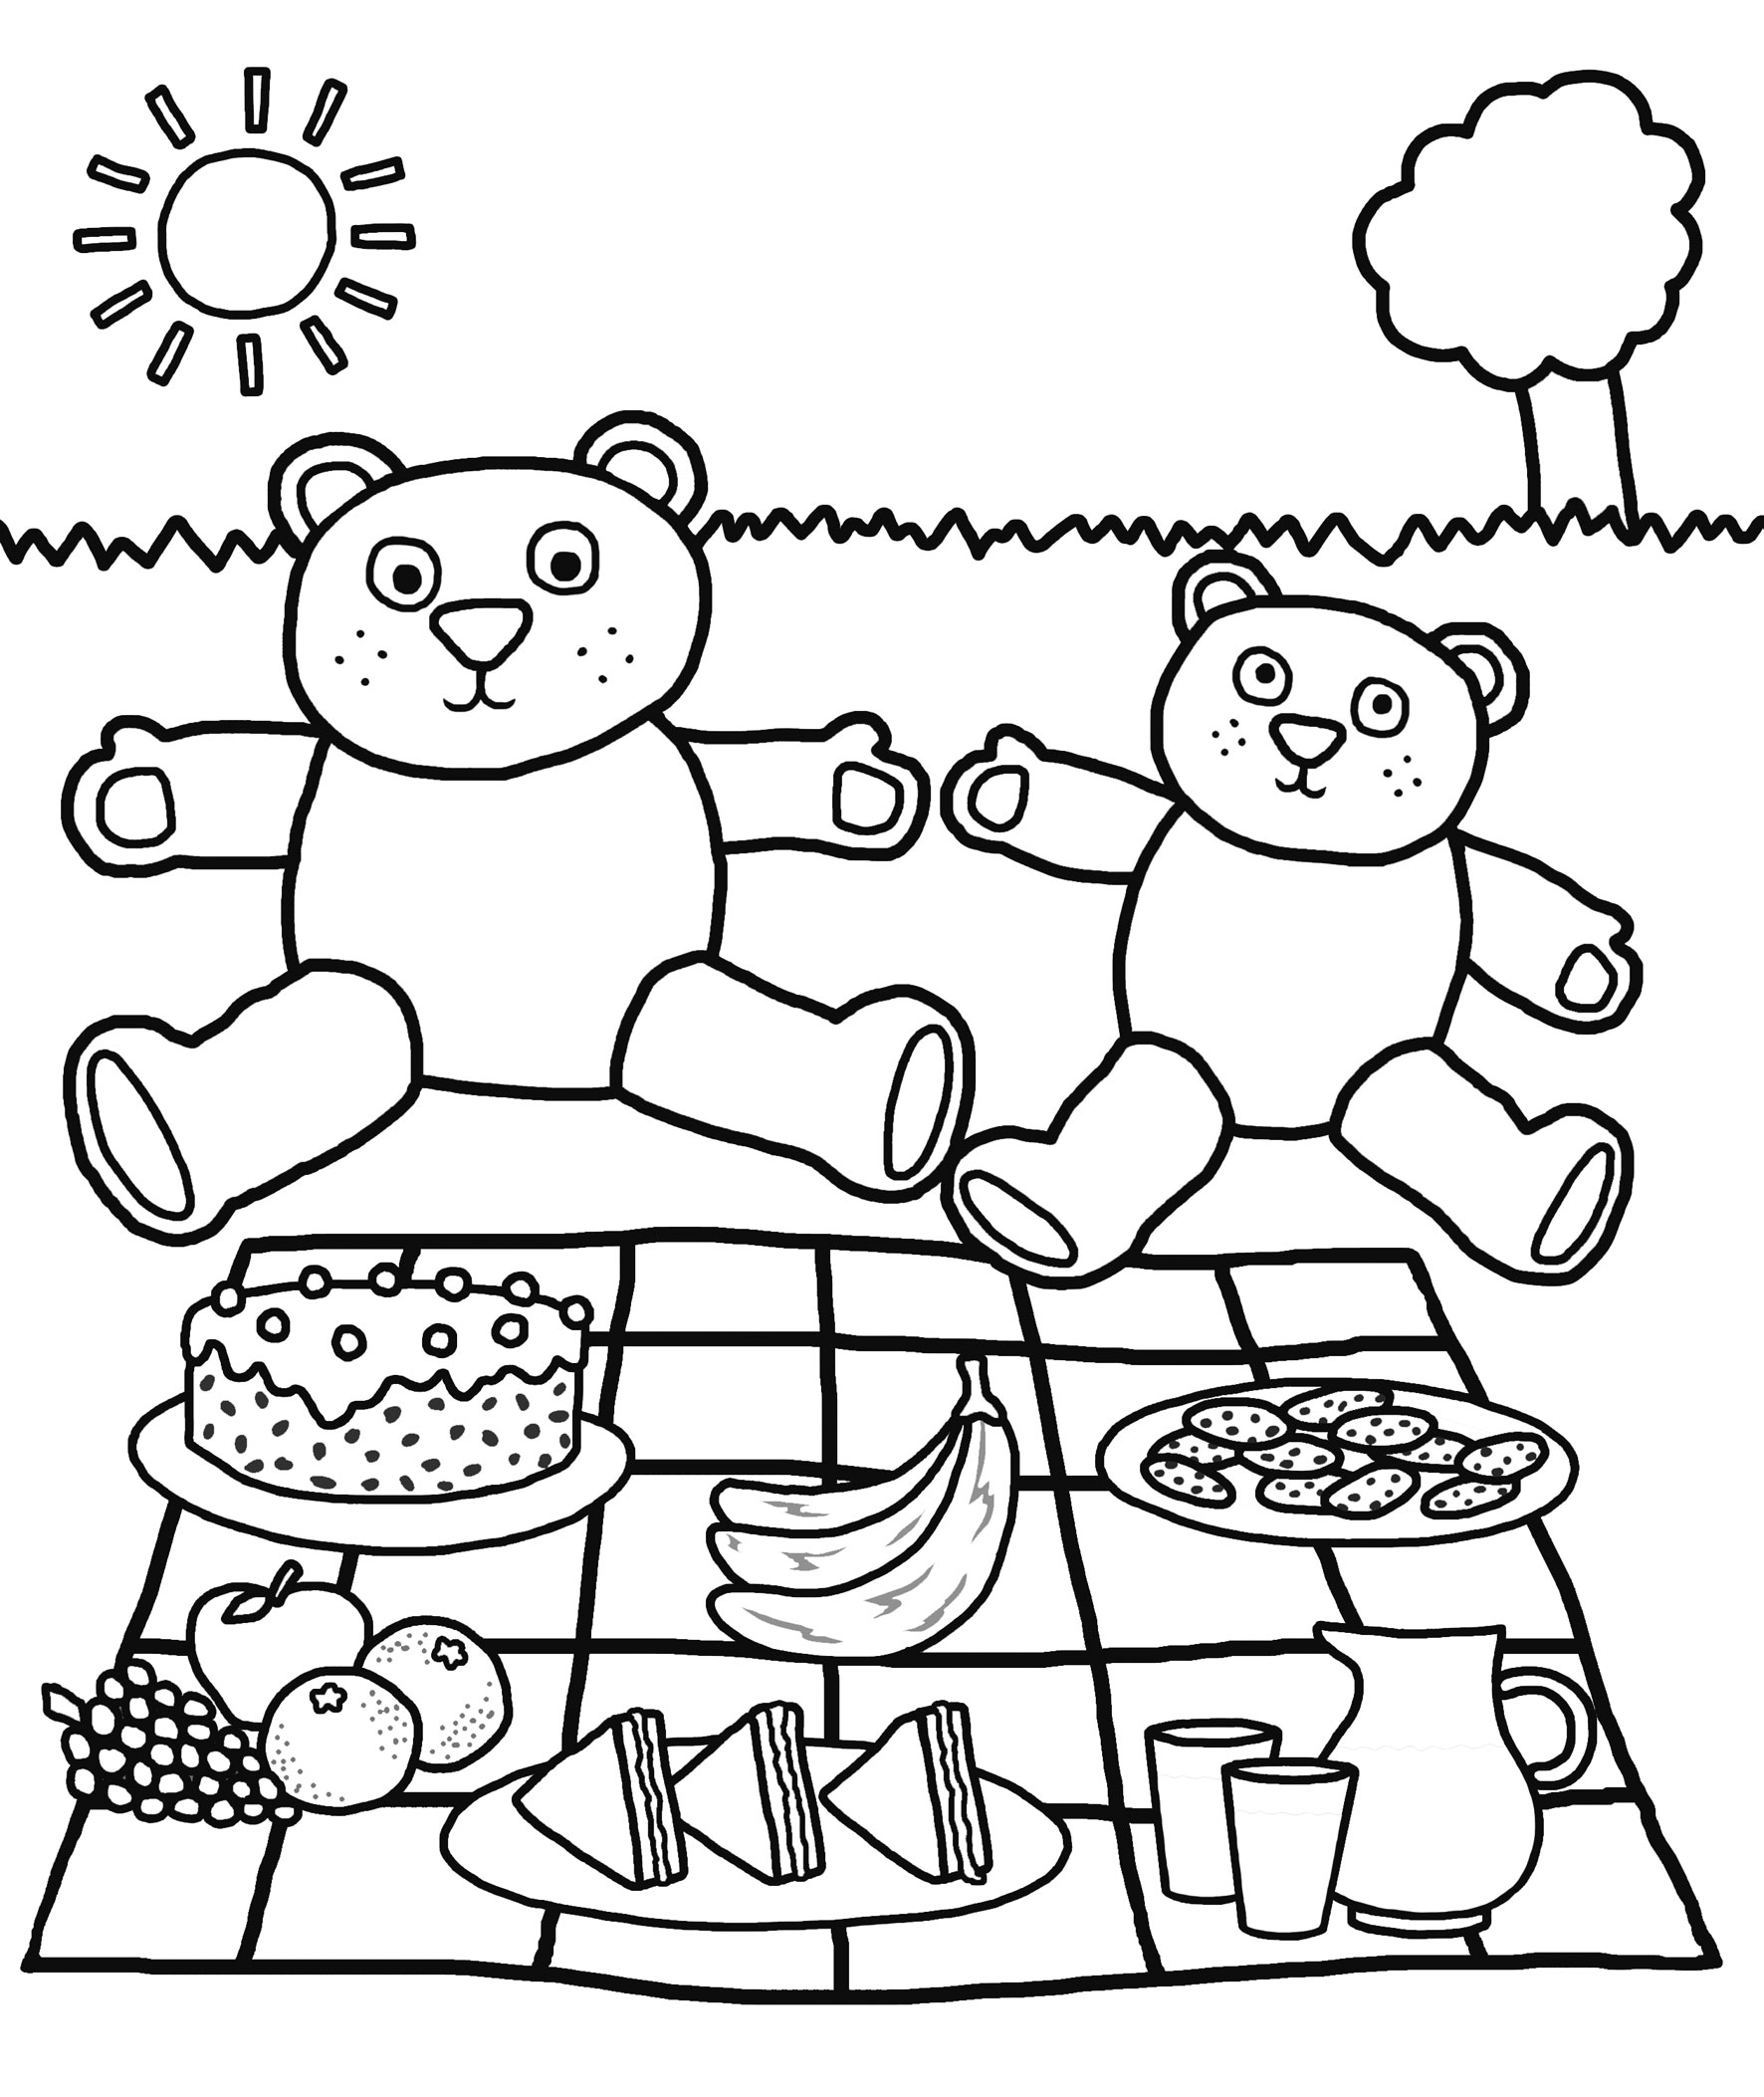 Printable Cartoon Worksheets : Free printable kindergarten coloring pages for kids